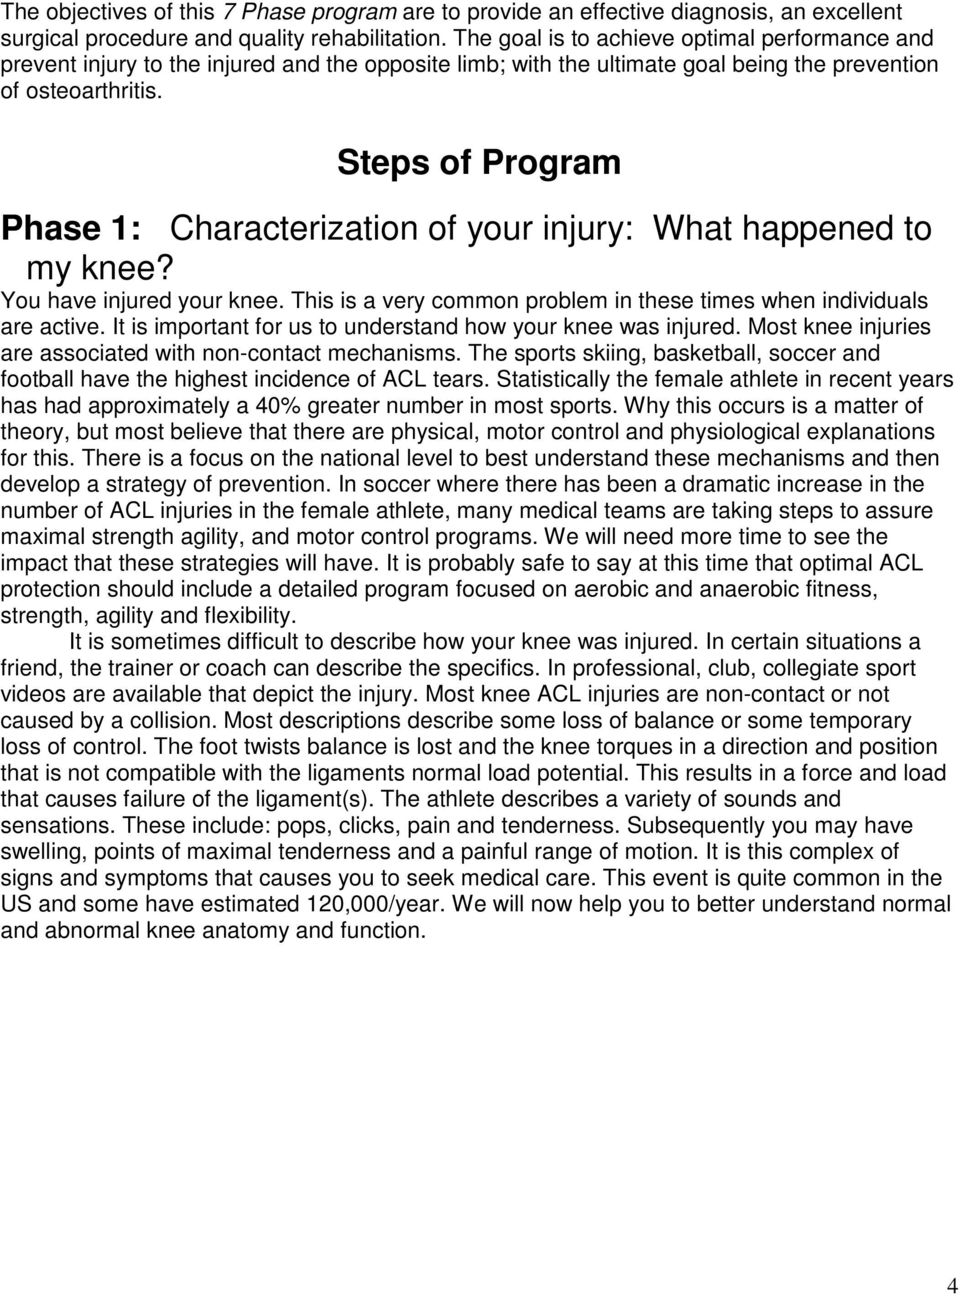 Steps of Program Phase 1: Characterization of your injury: What happened to my knee? You have injured your knee. This is a very common problem in these times when individuals are active.